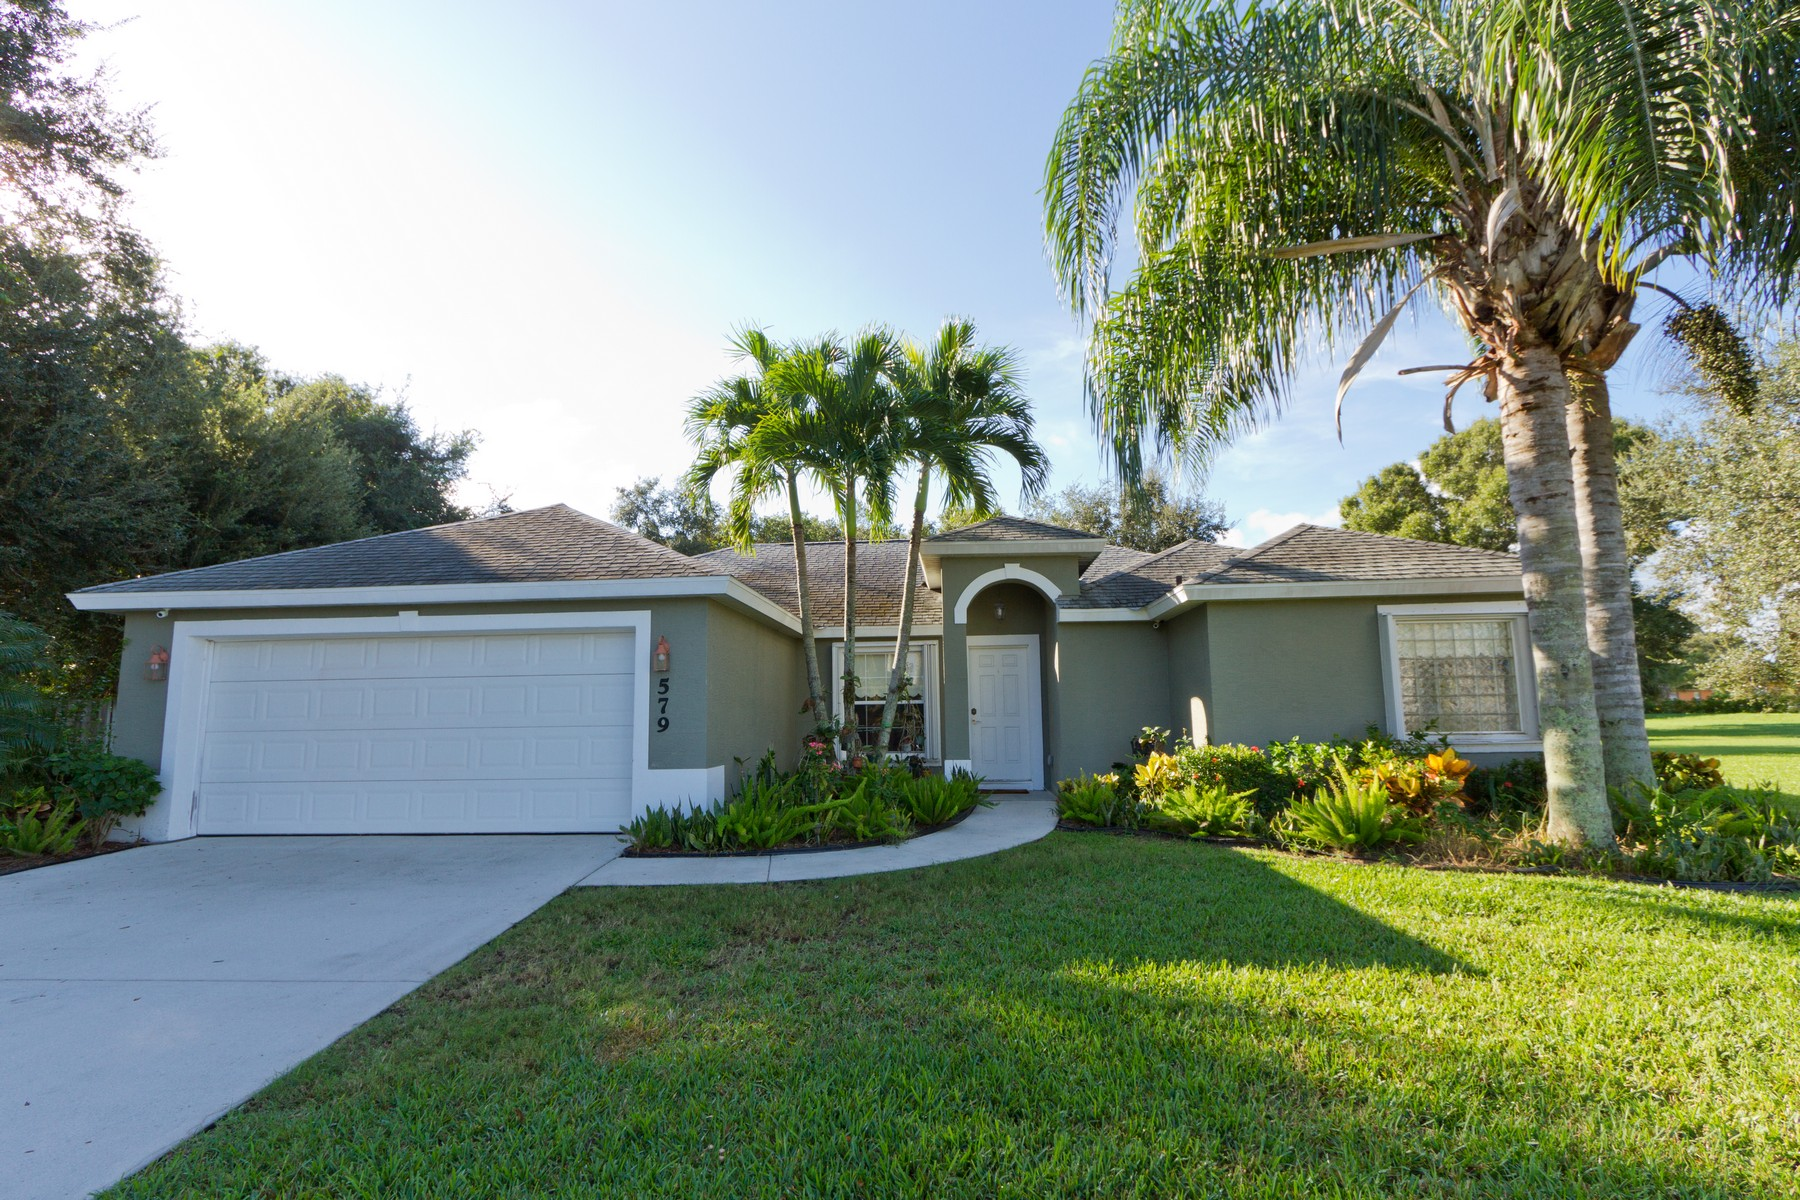 Single Family Homes for Sale at Pool Home within a Quiet Gated Community 579 High Hawk Circle Vero Beach, Florida 32962 United States